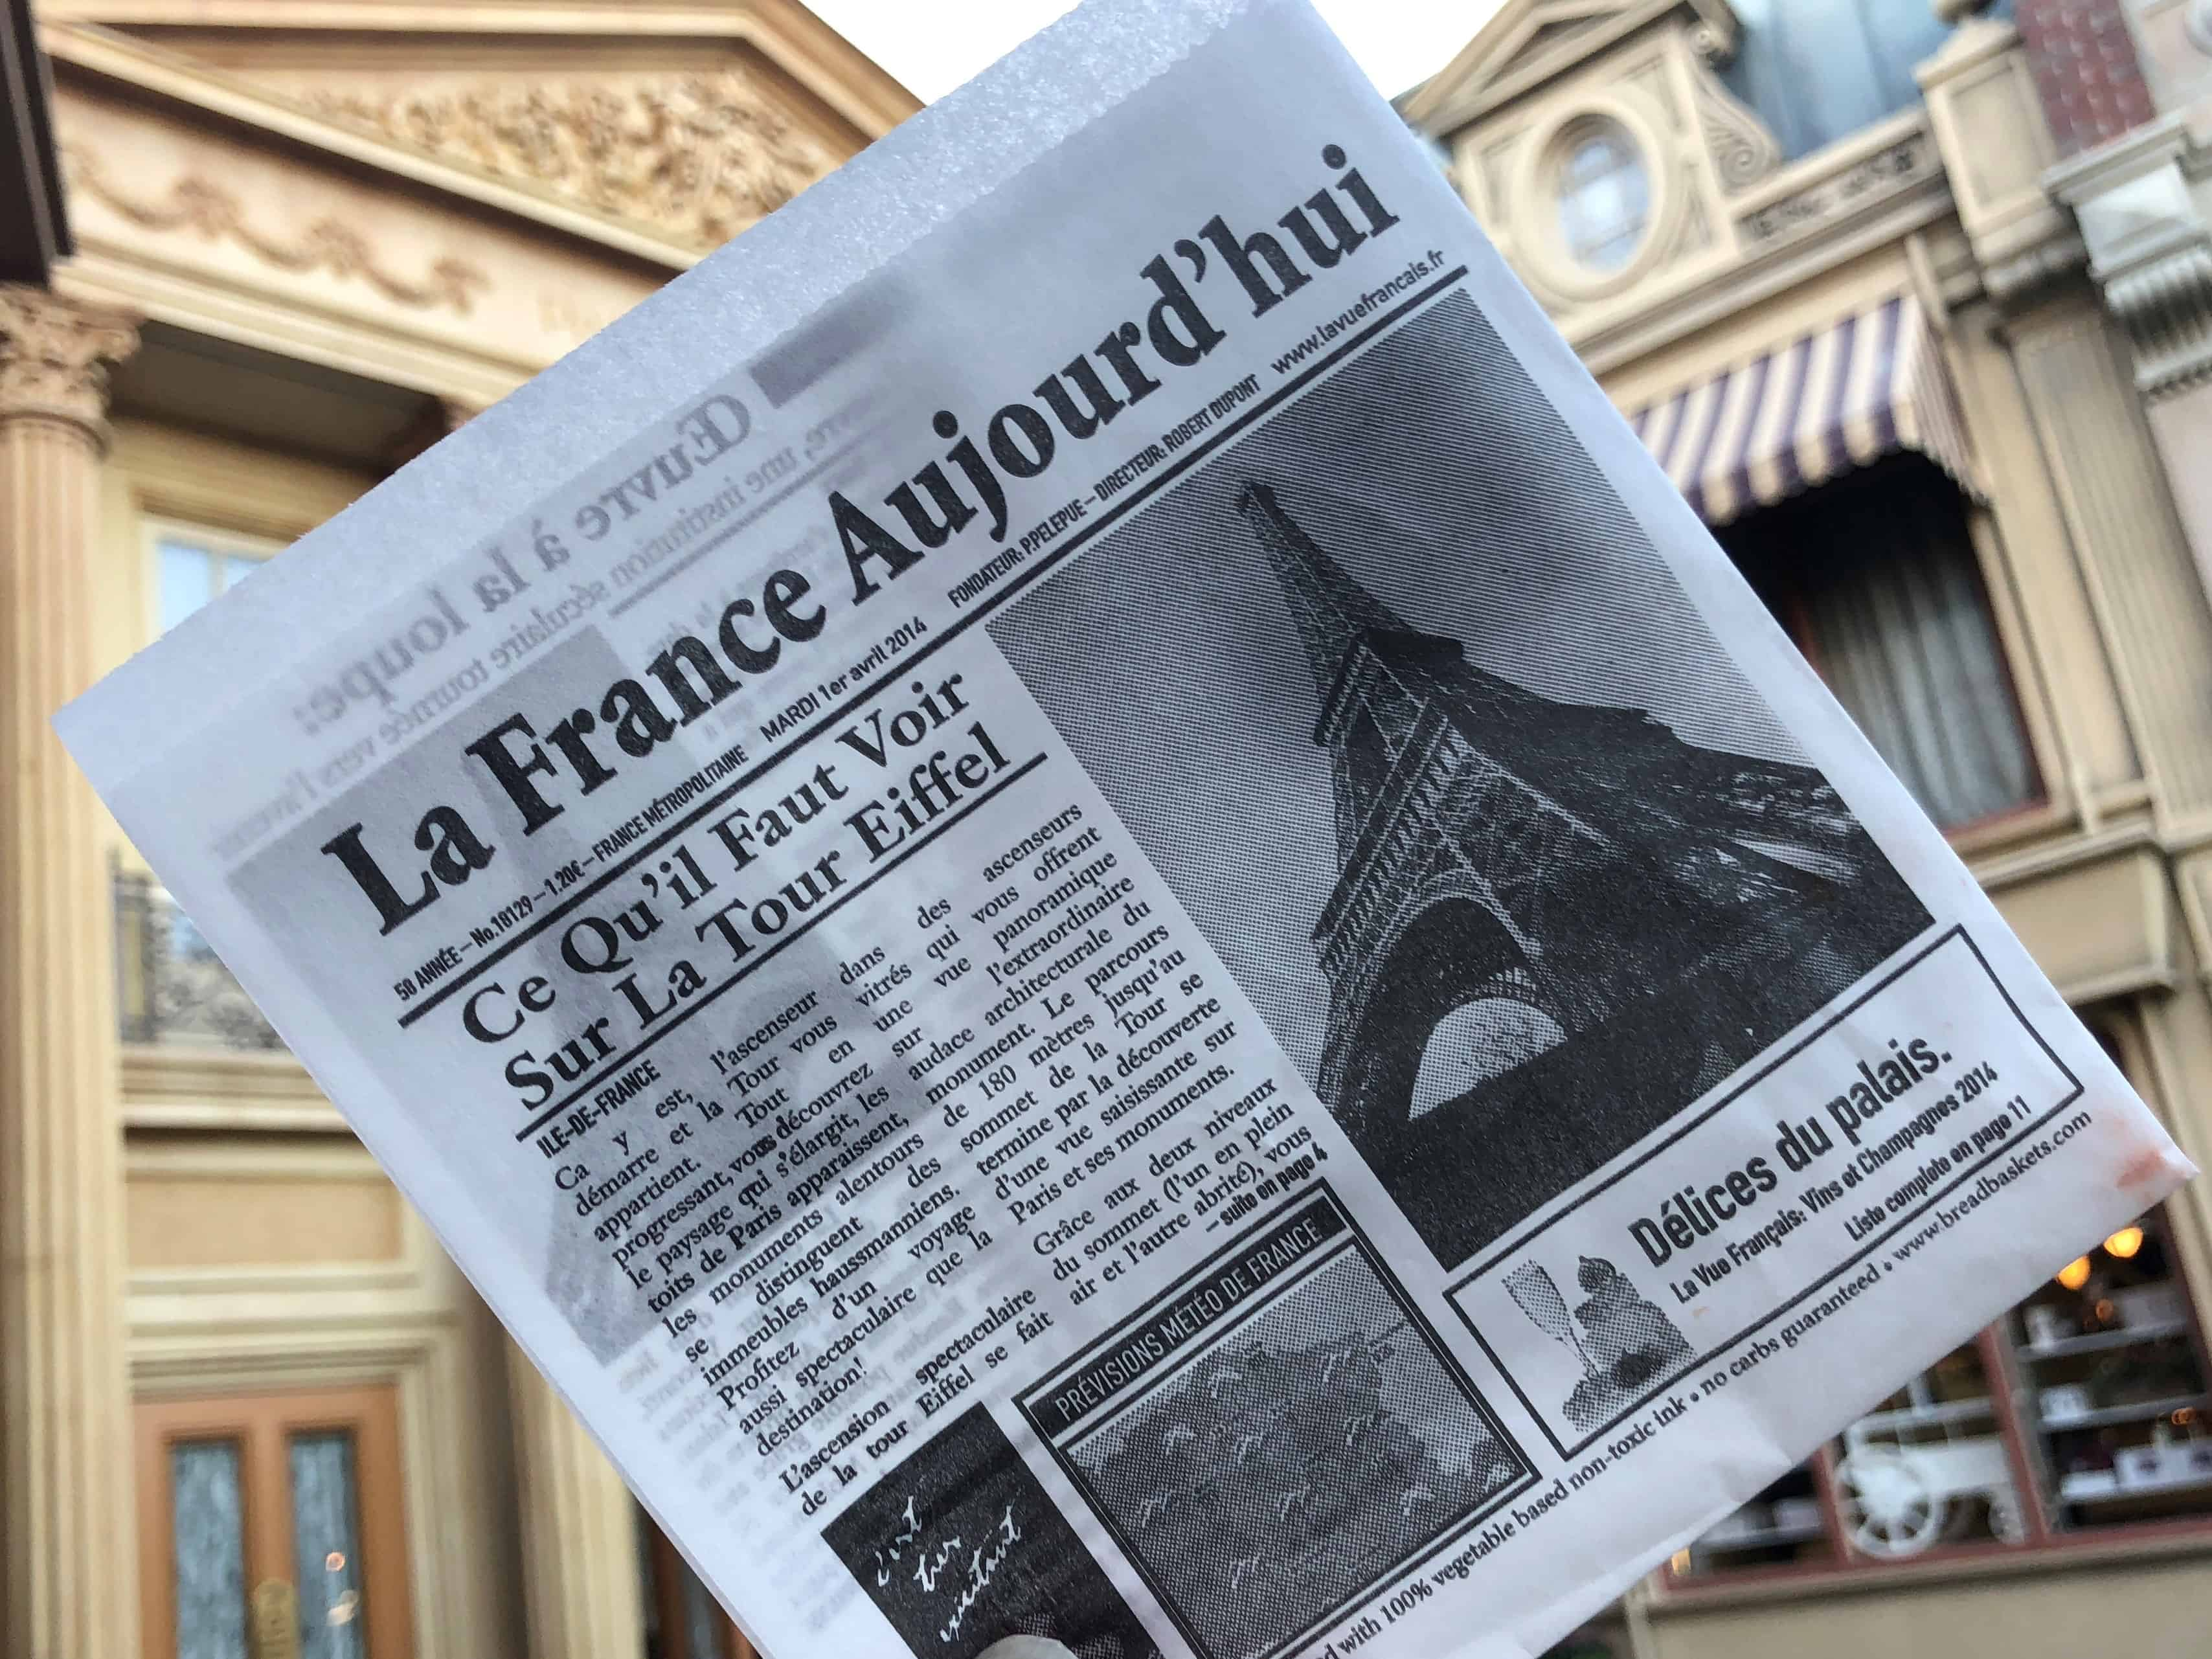 Dating Around World Showcase: Leaving Footprints in France · Footprints in Pixie Dust